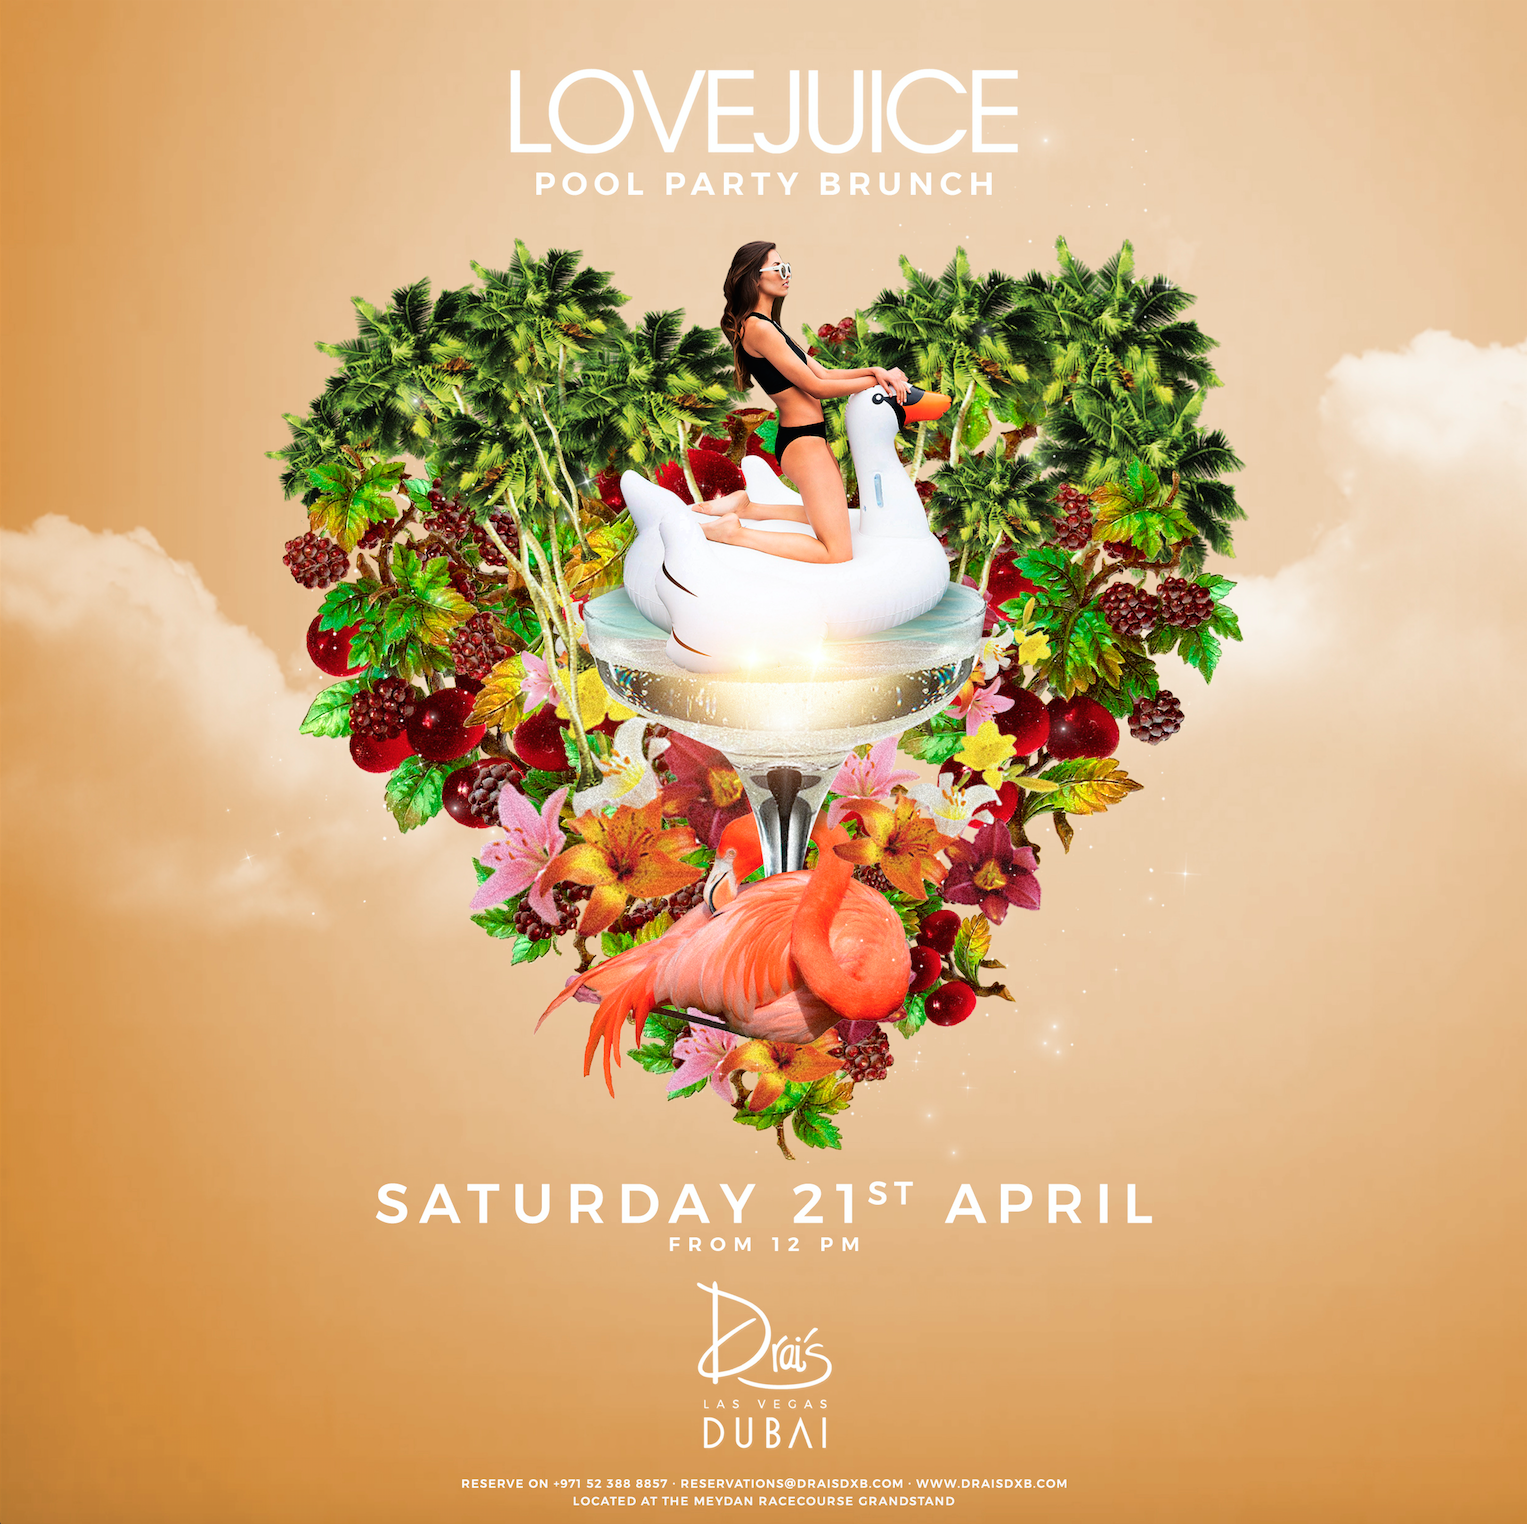 LoveJuice at Drais